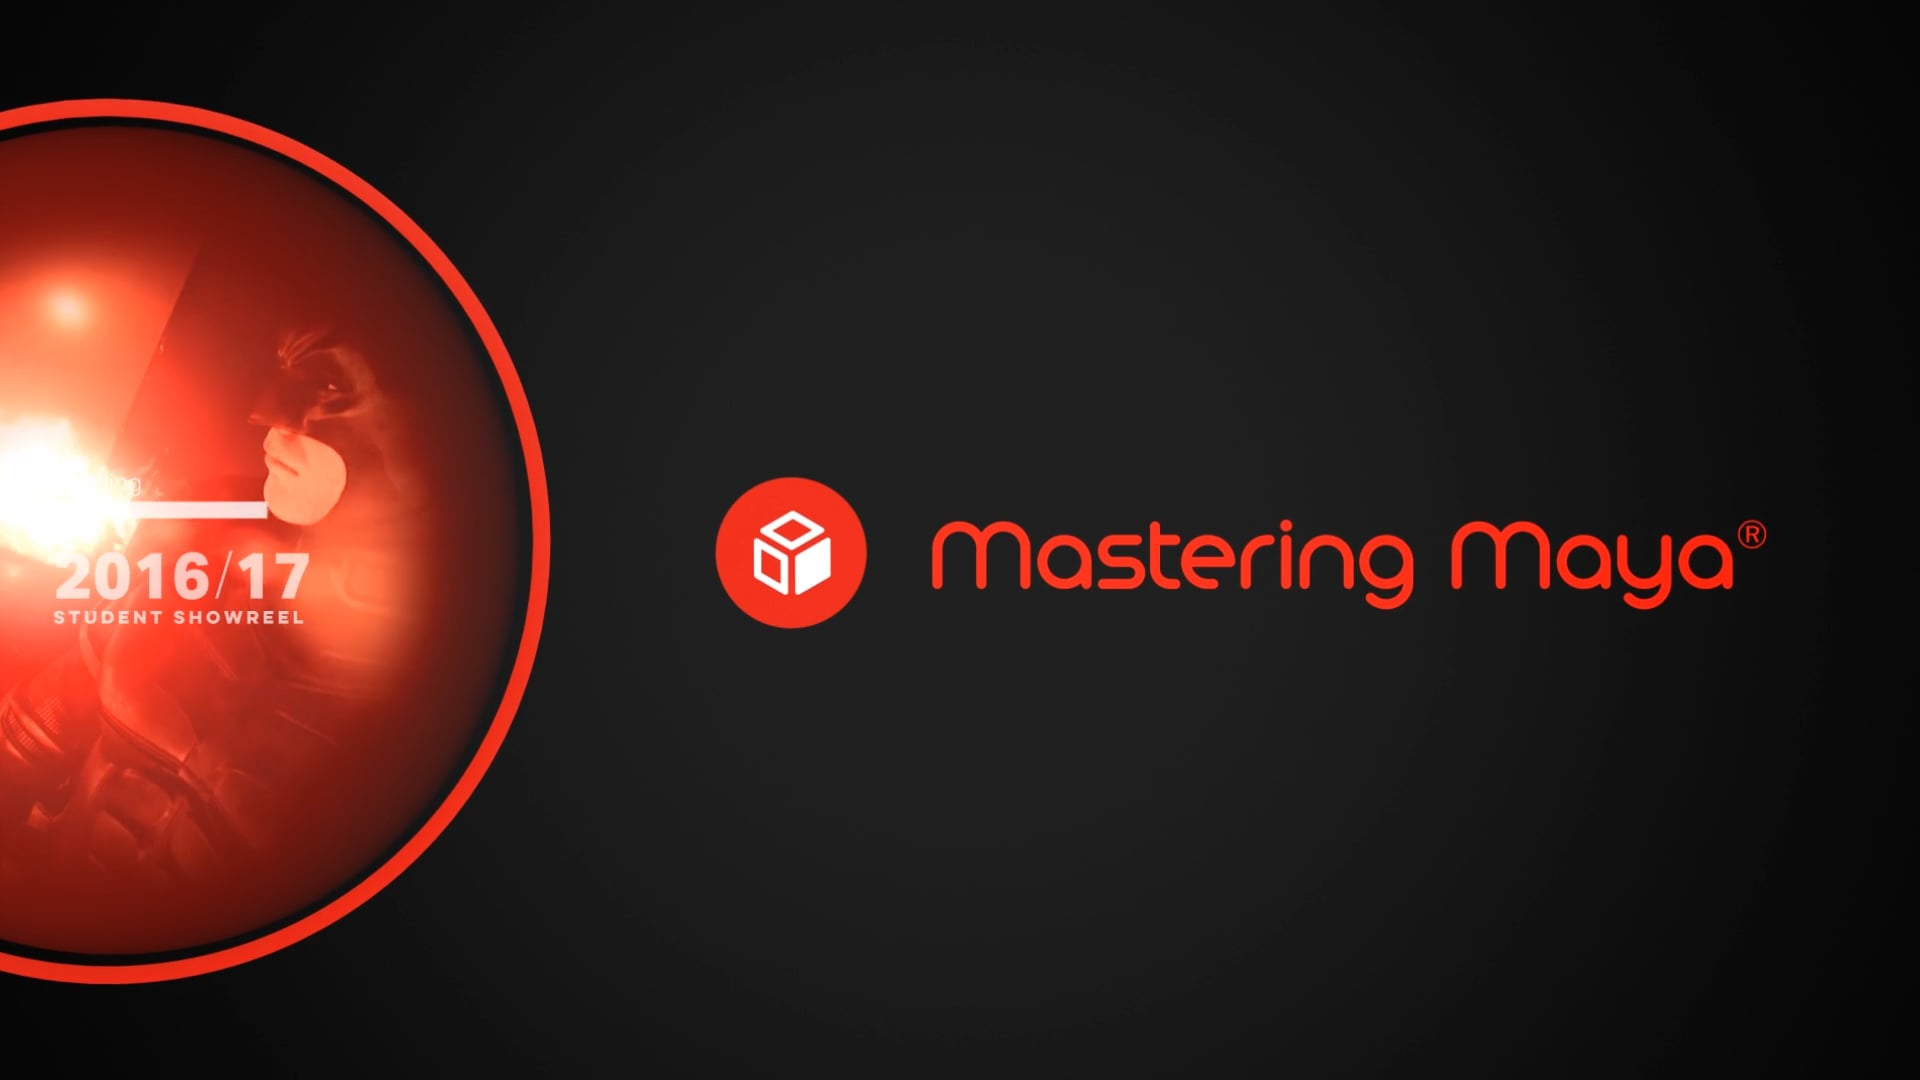 Master in Mastering Maya anno accademico 2016/2017